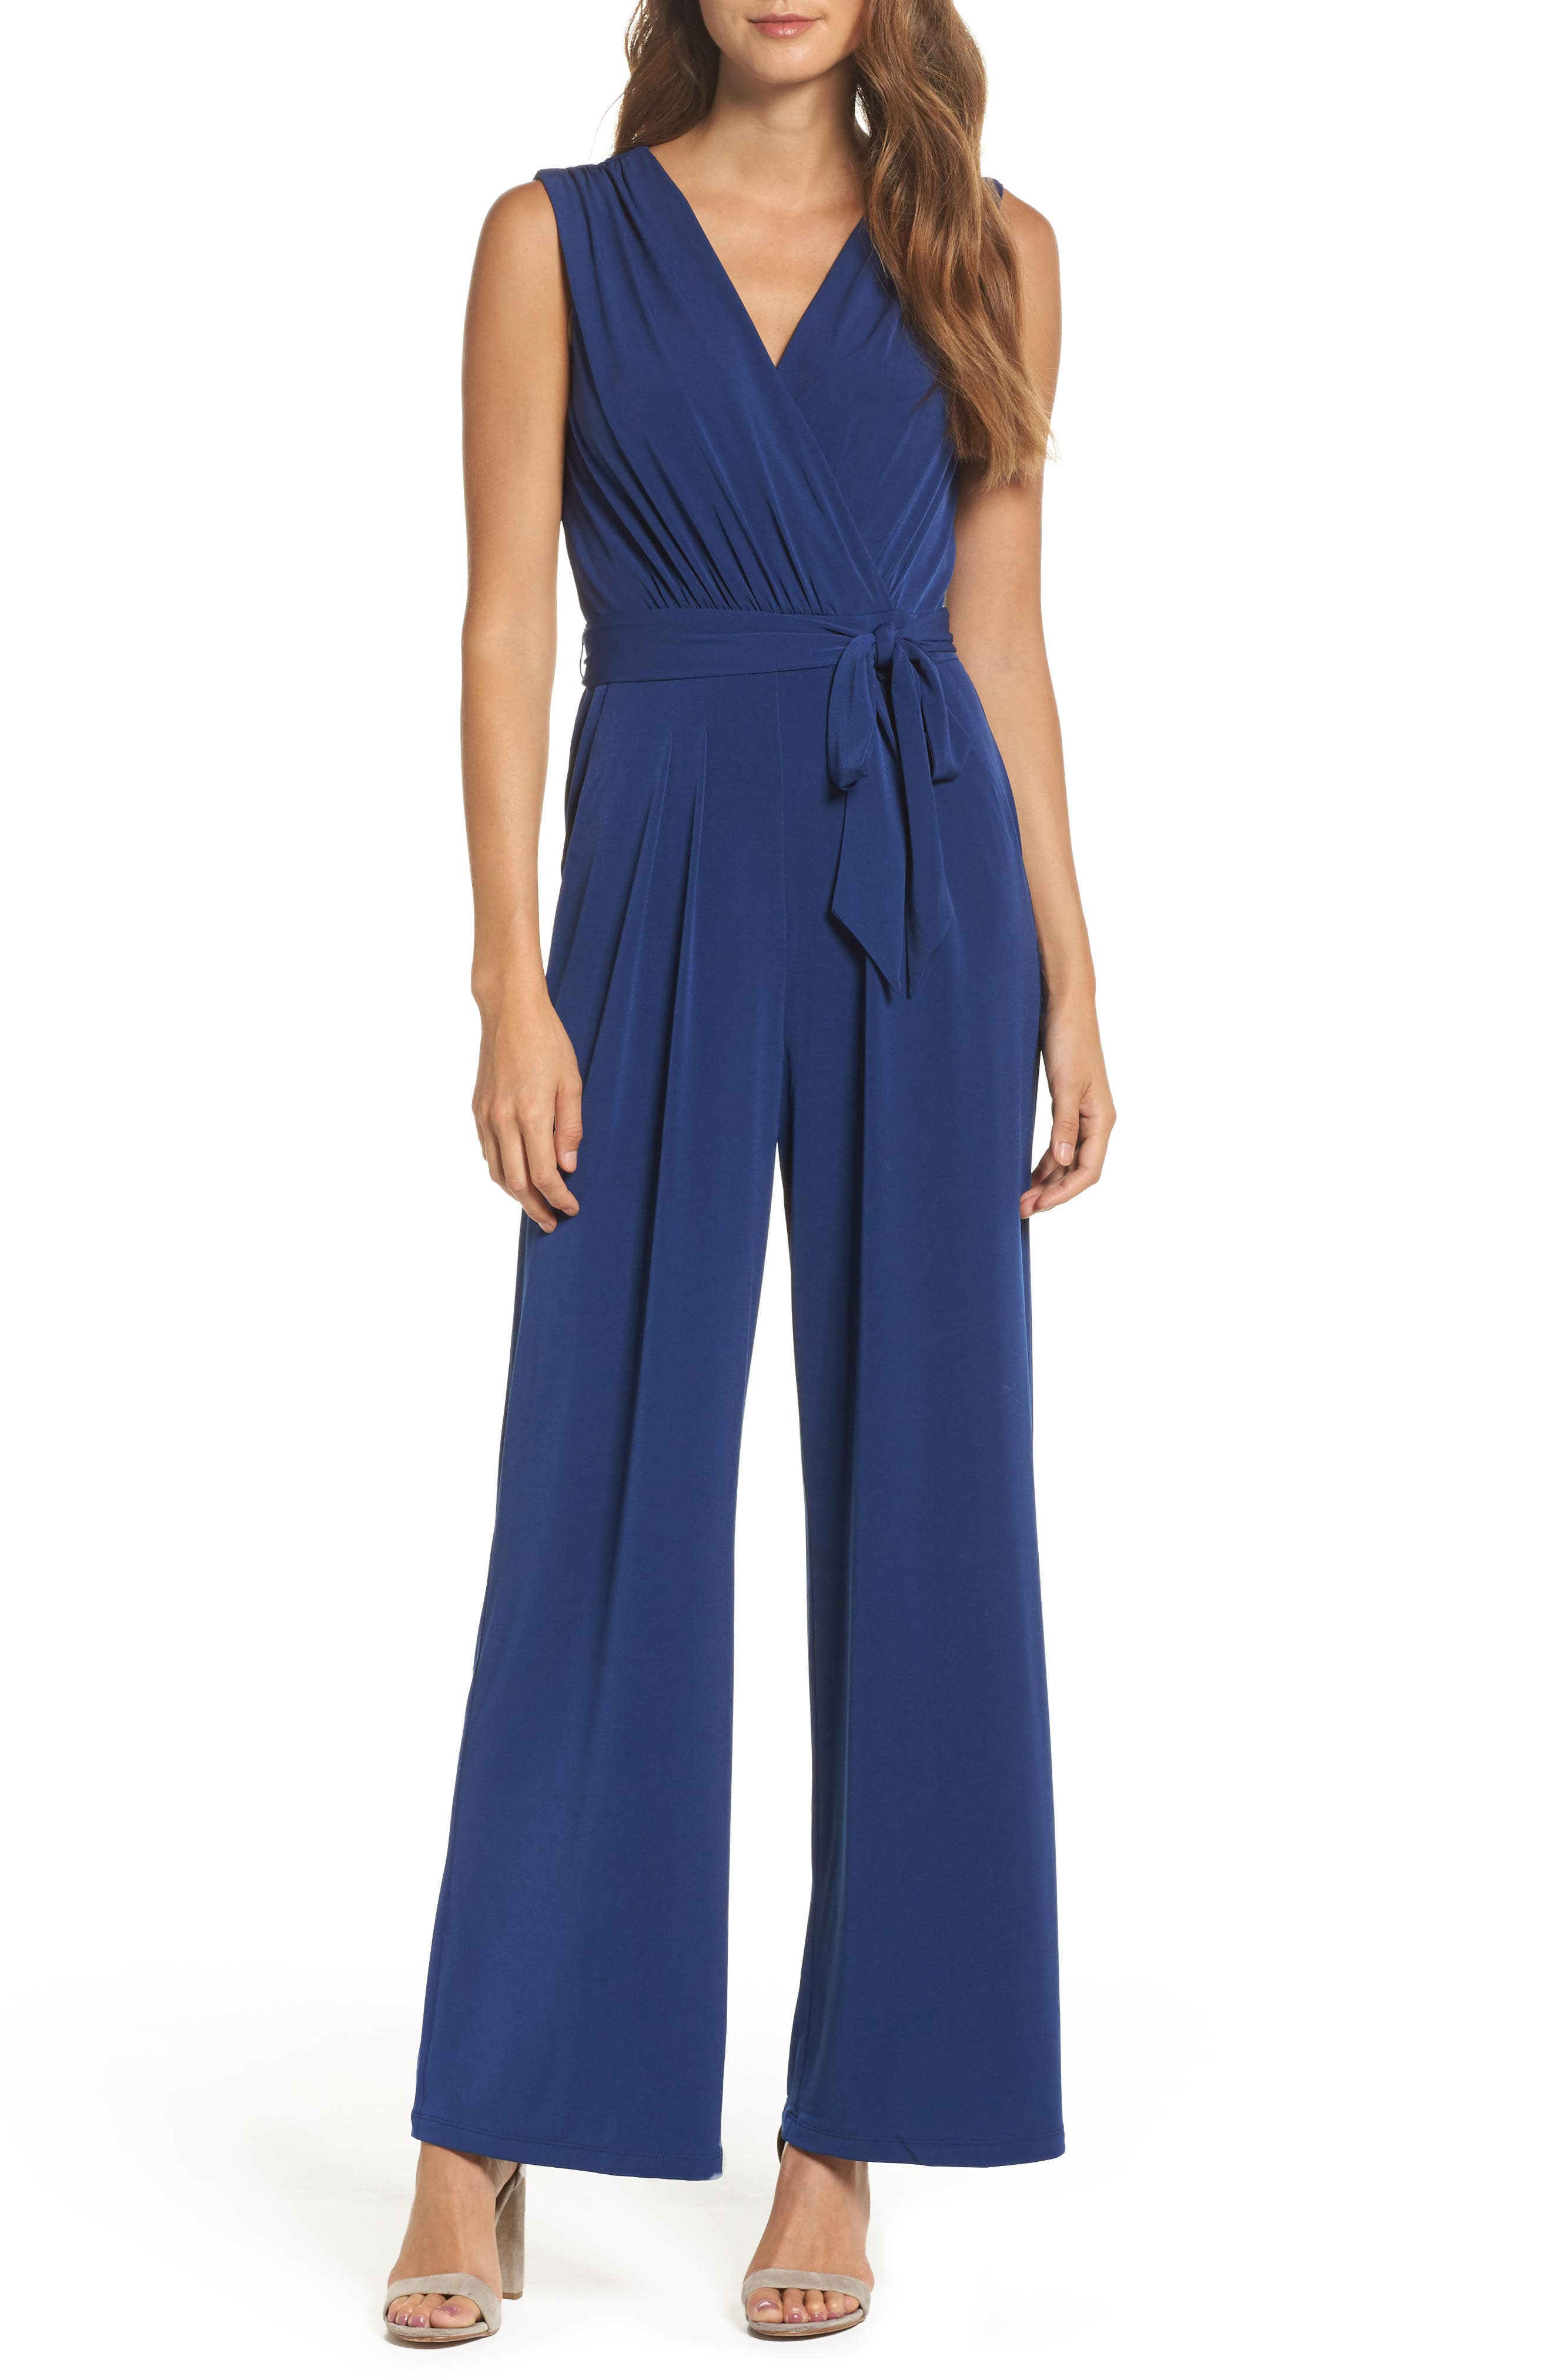 Alternate Image 1 Selected - Vince Camuto Faux Wrap Jersey Jumpsuit